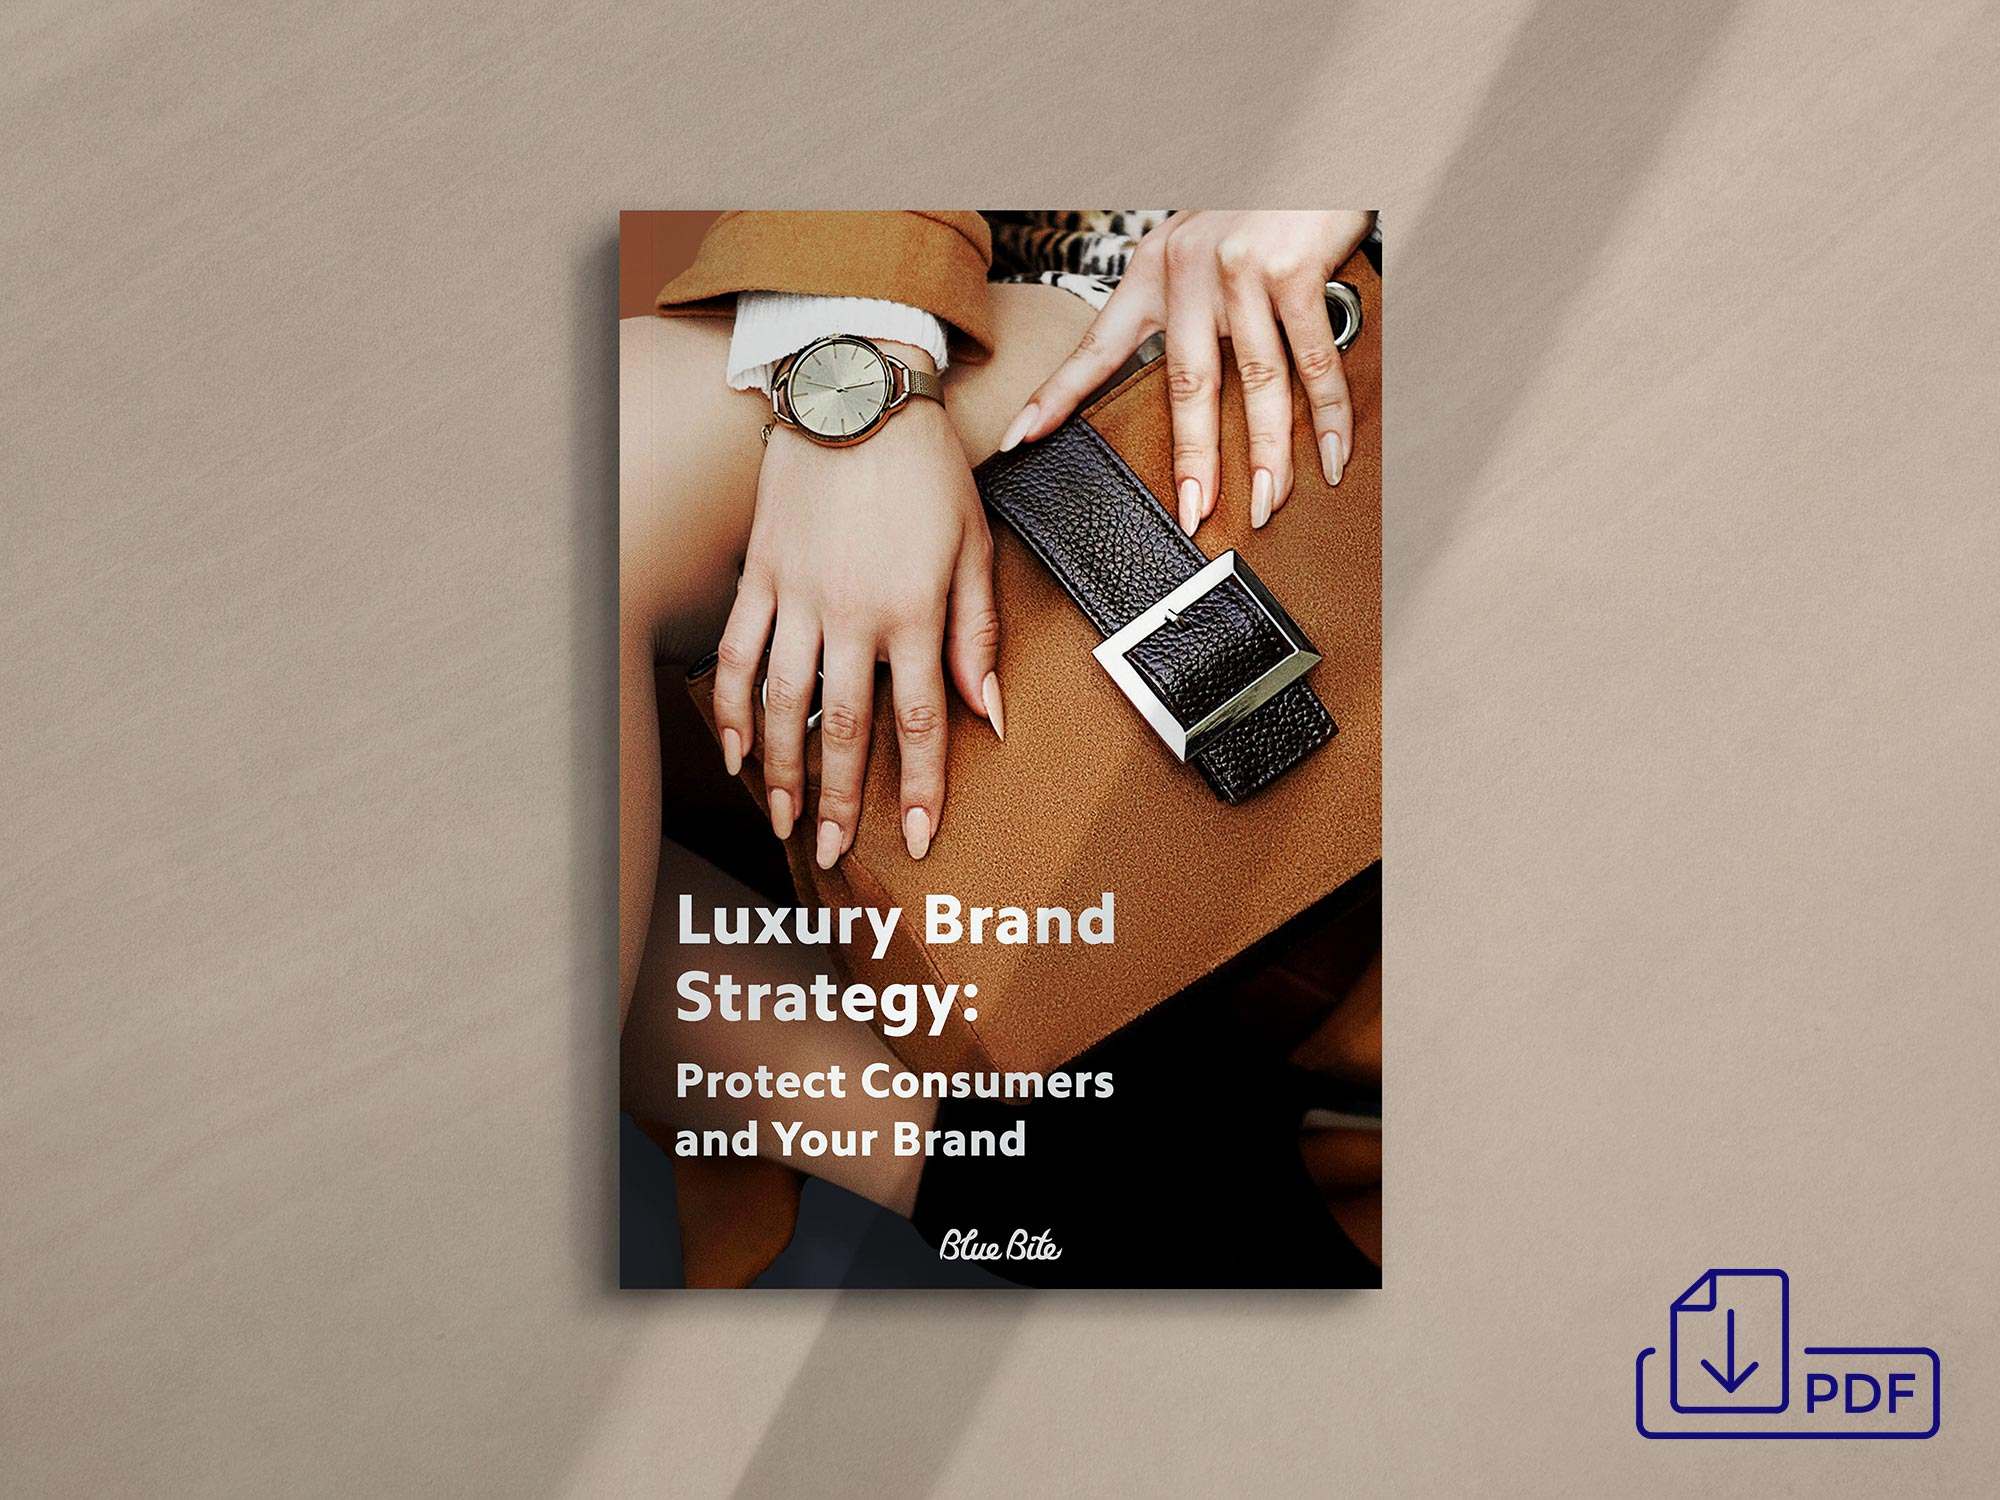 Get the Luxury Brand Strategy PDF